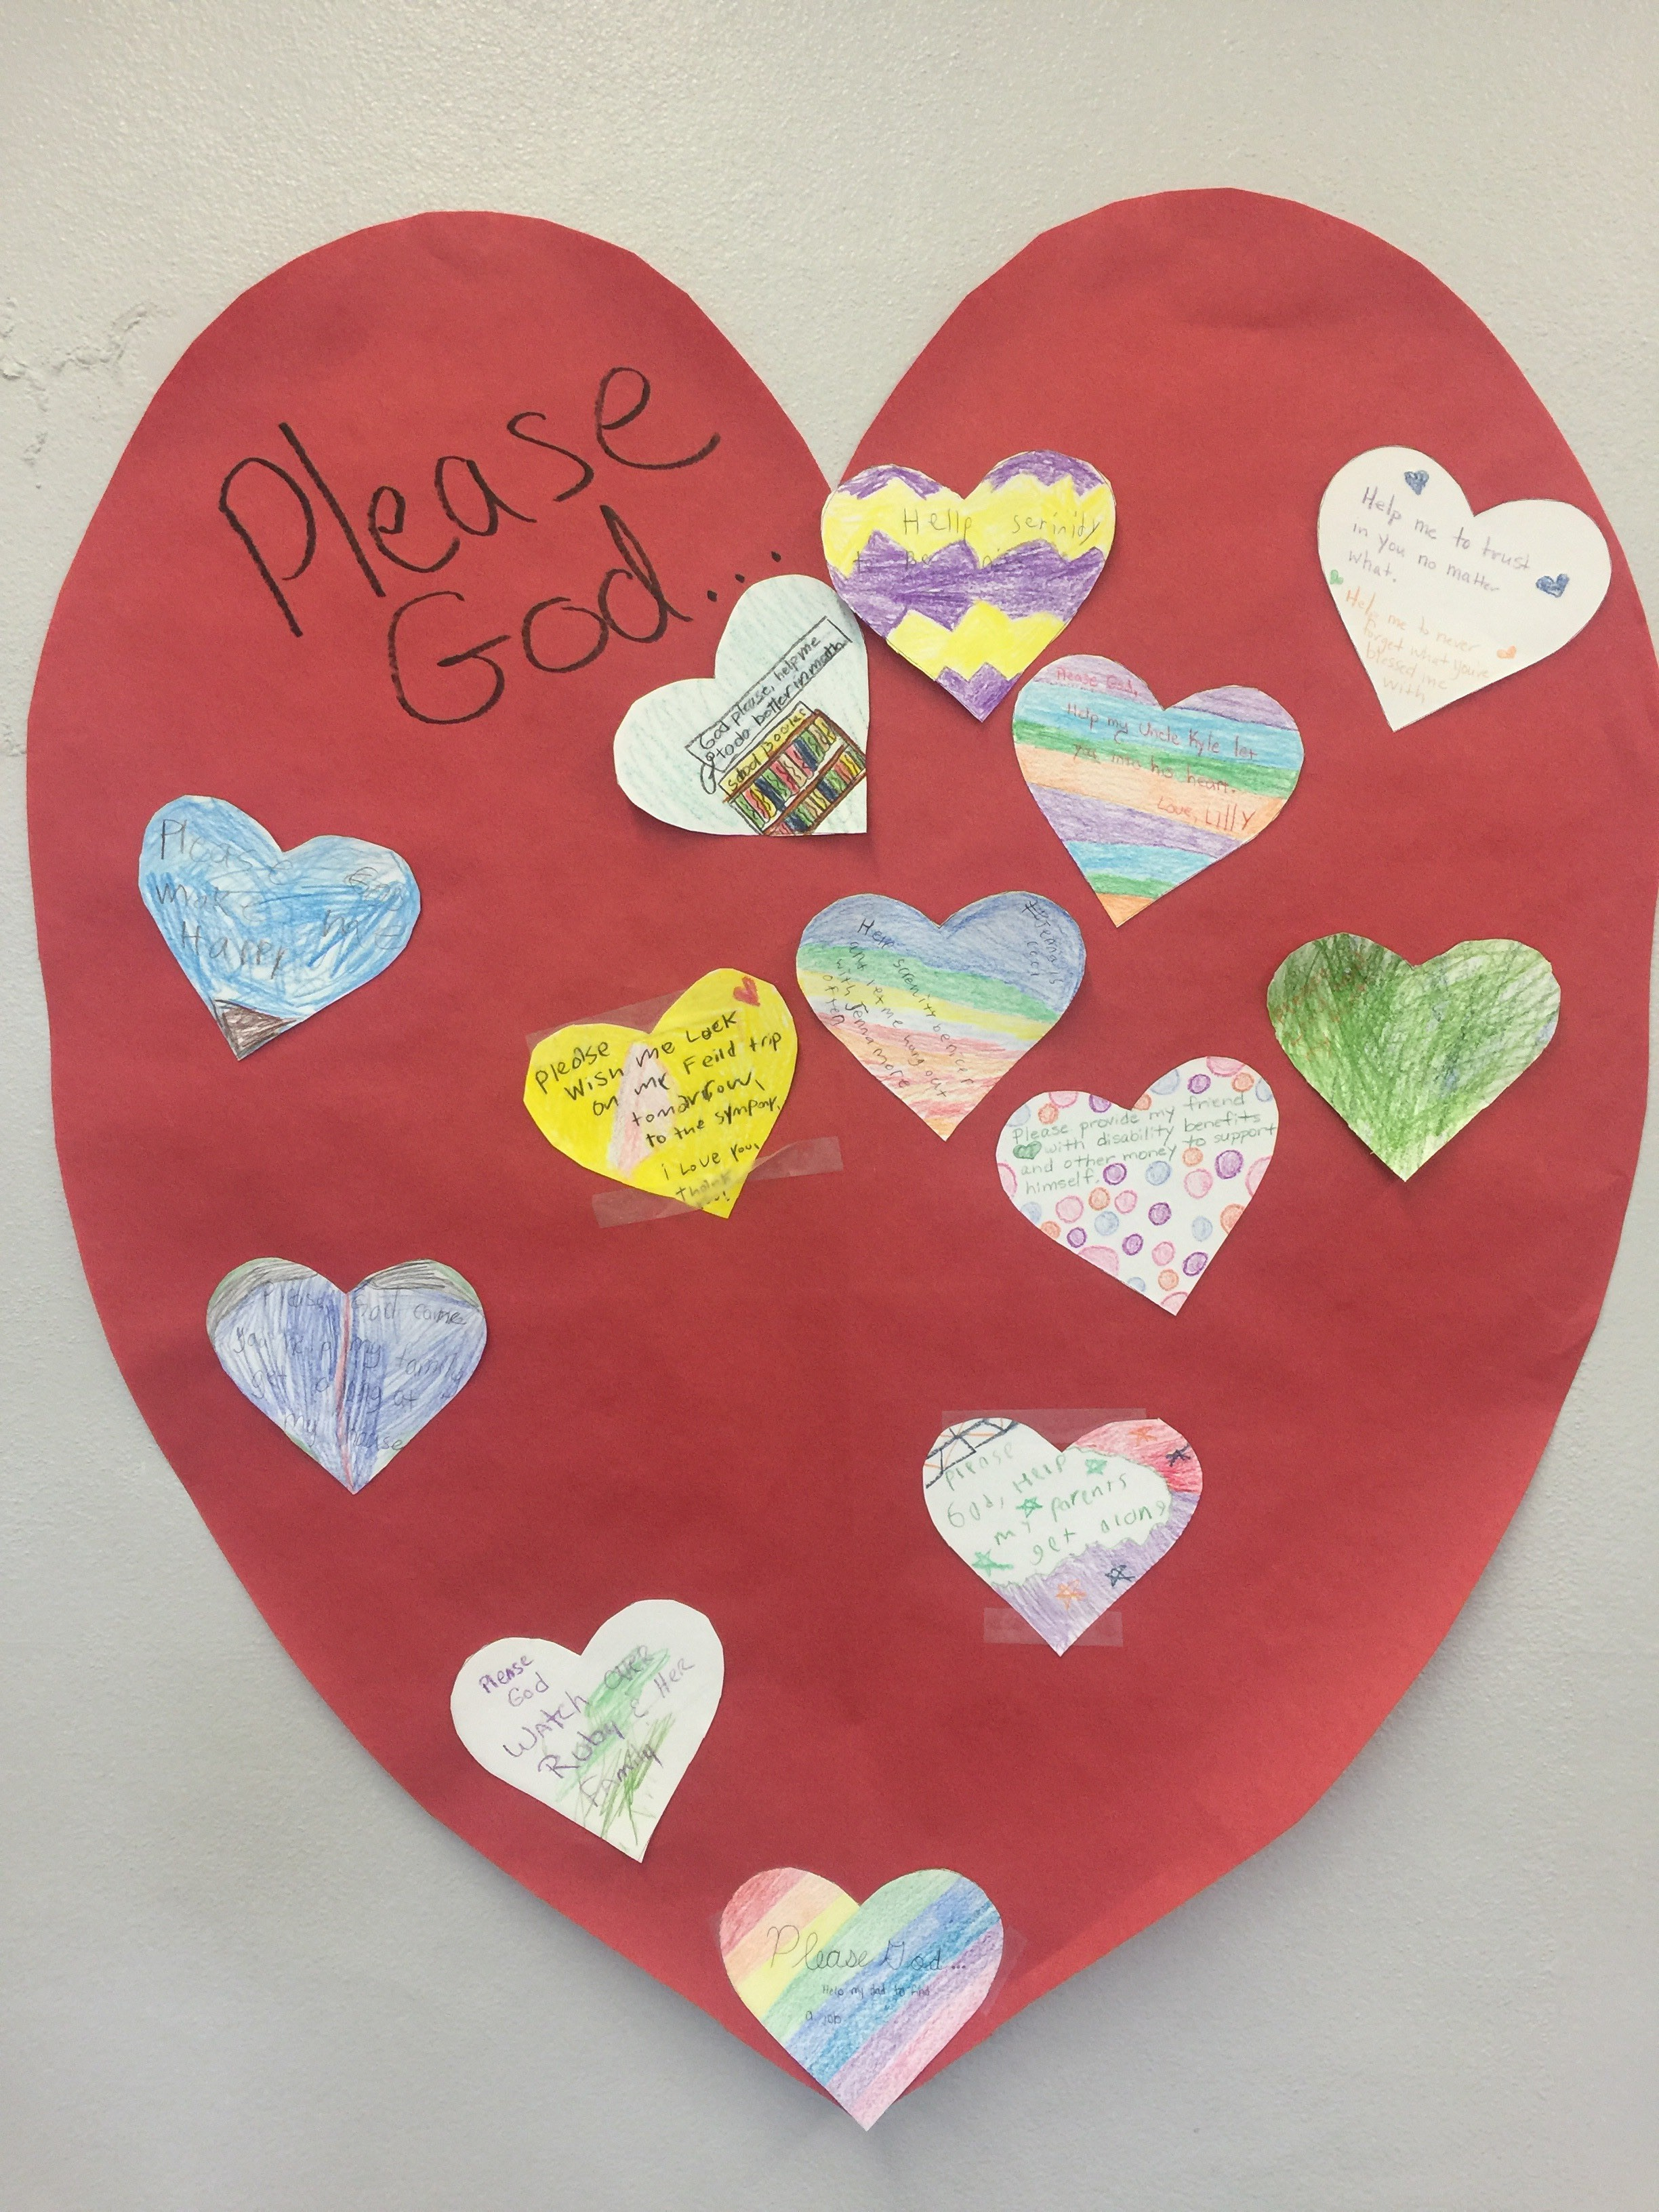 We then put our prayer on the heart based on how we wrote our prayer.